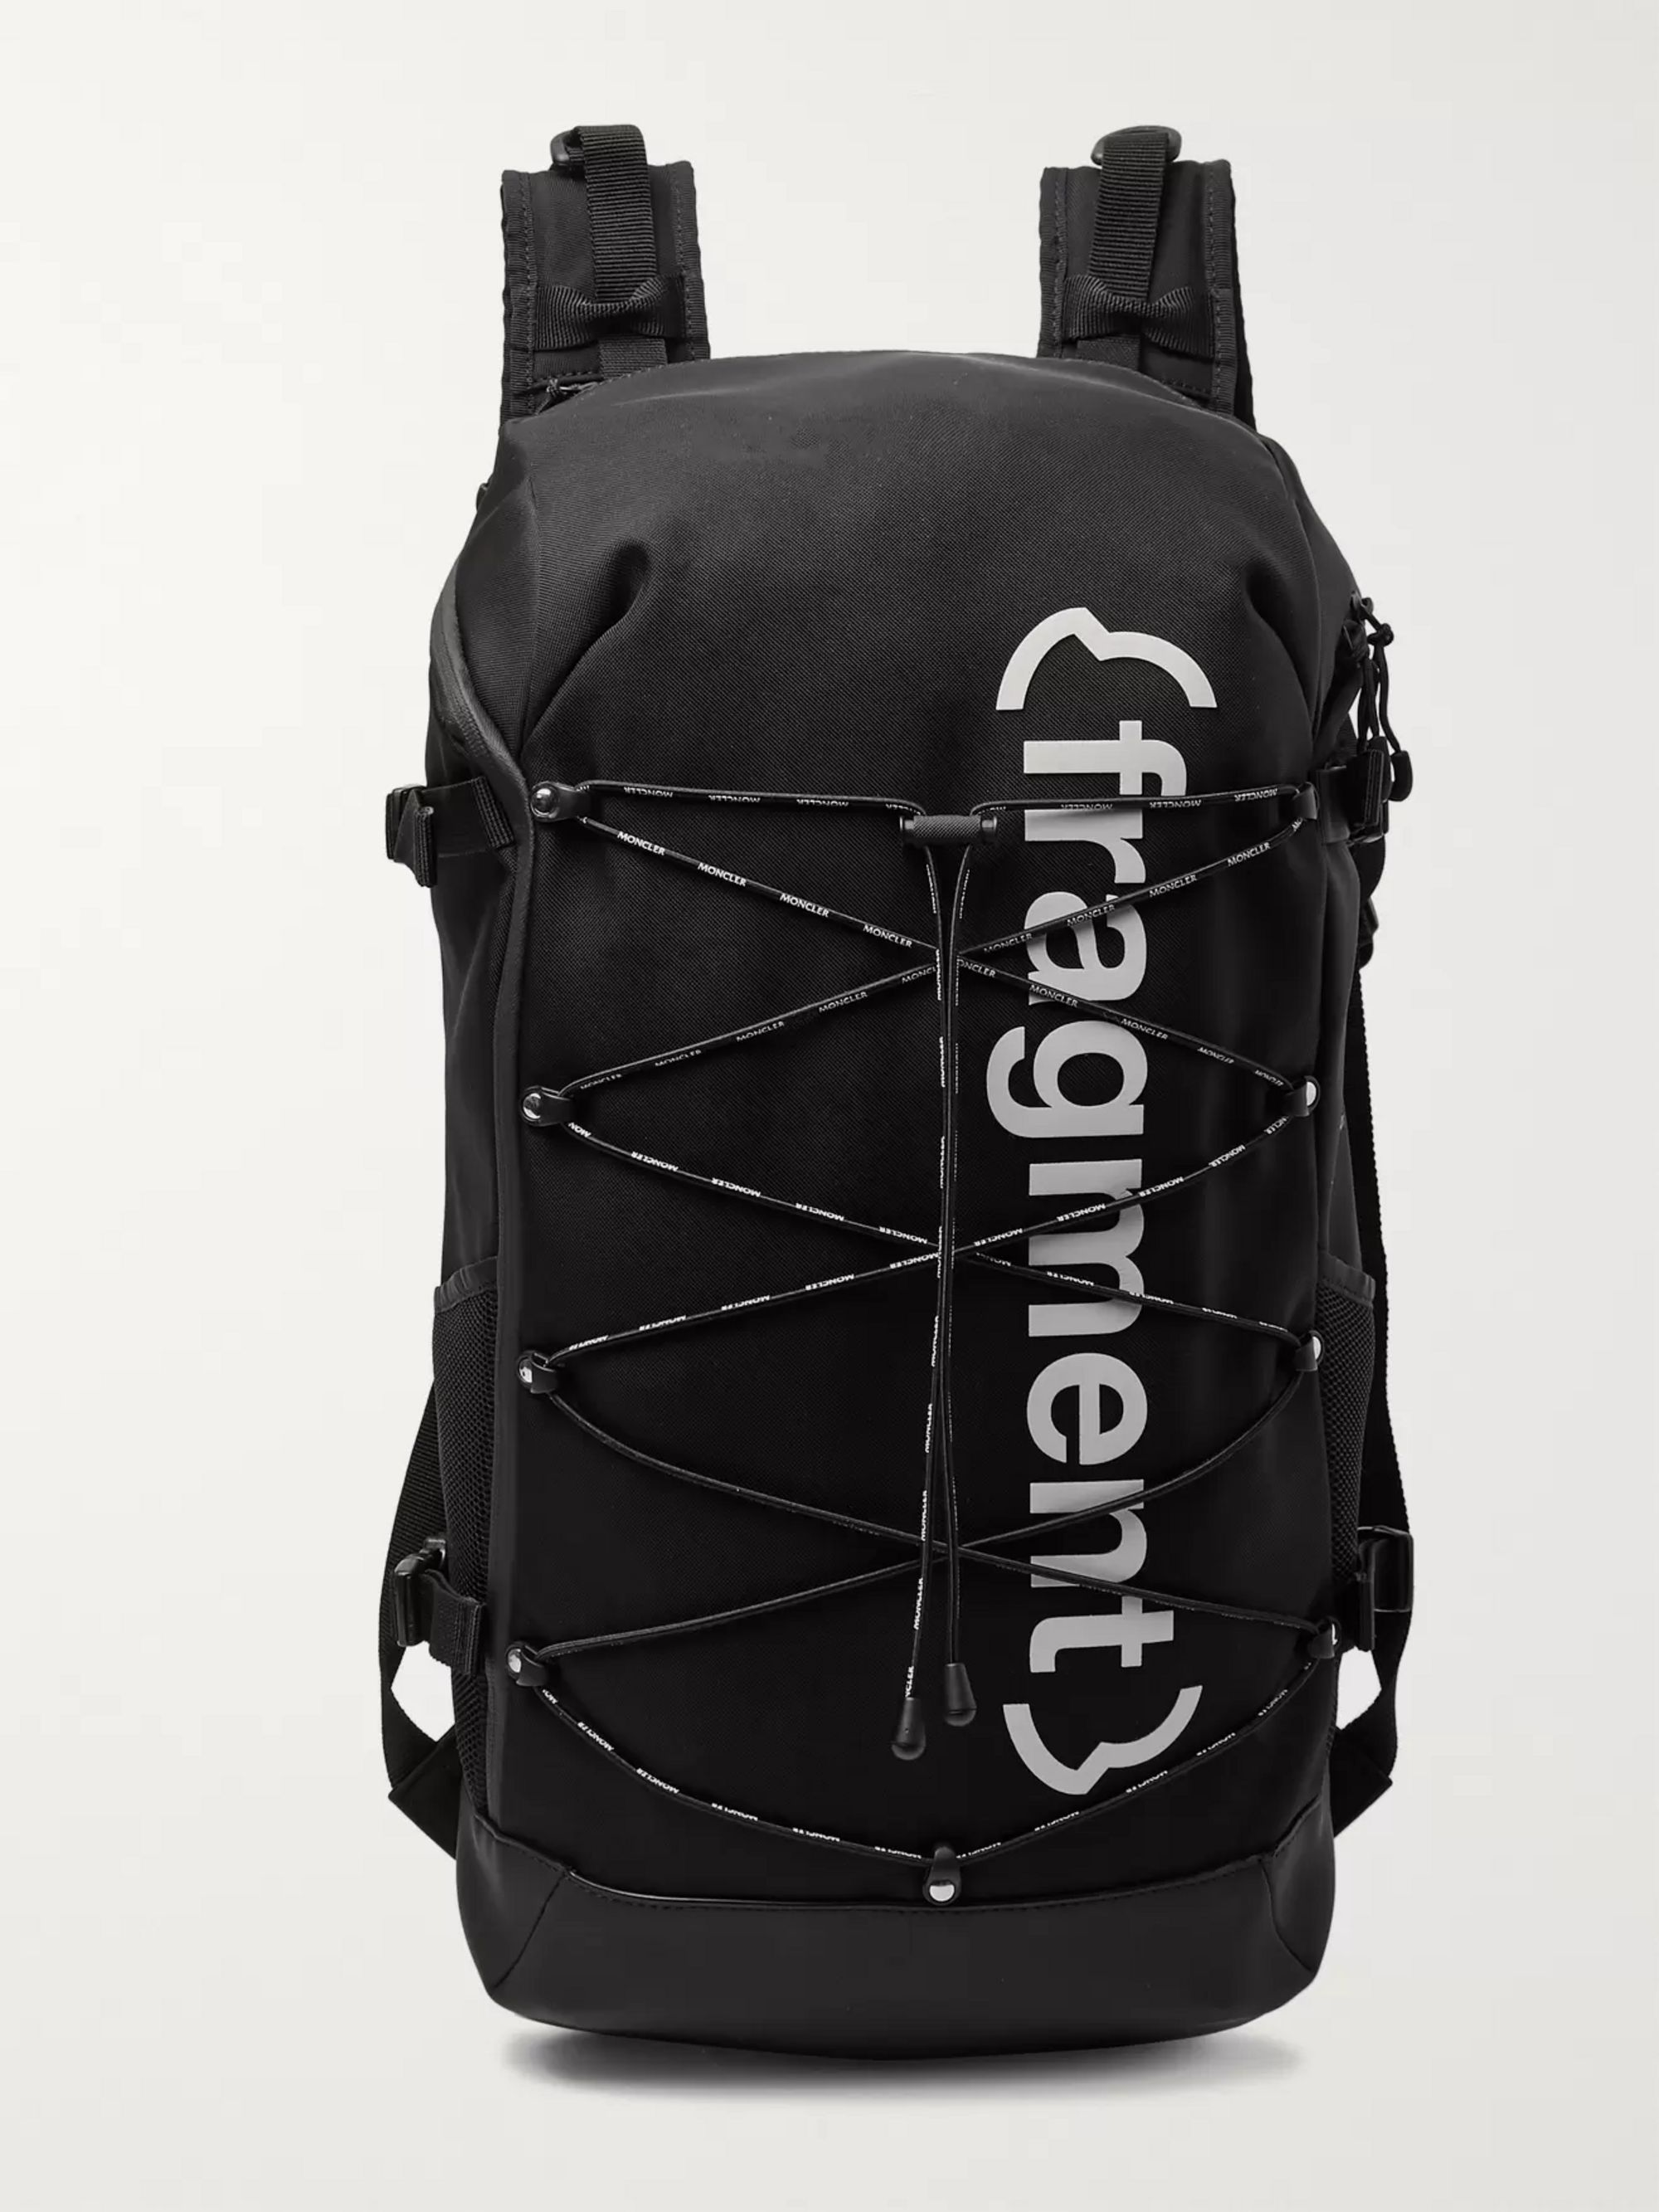 Moncler Genius 7 Moncler Fragment Printed Shell and Neoprene Backpack